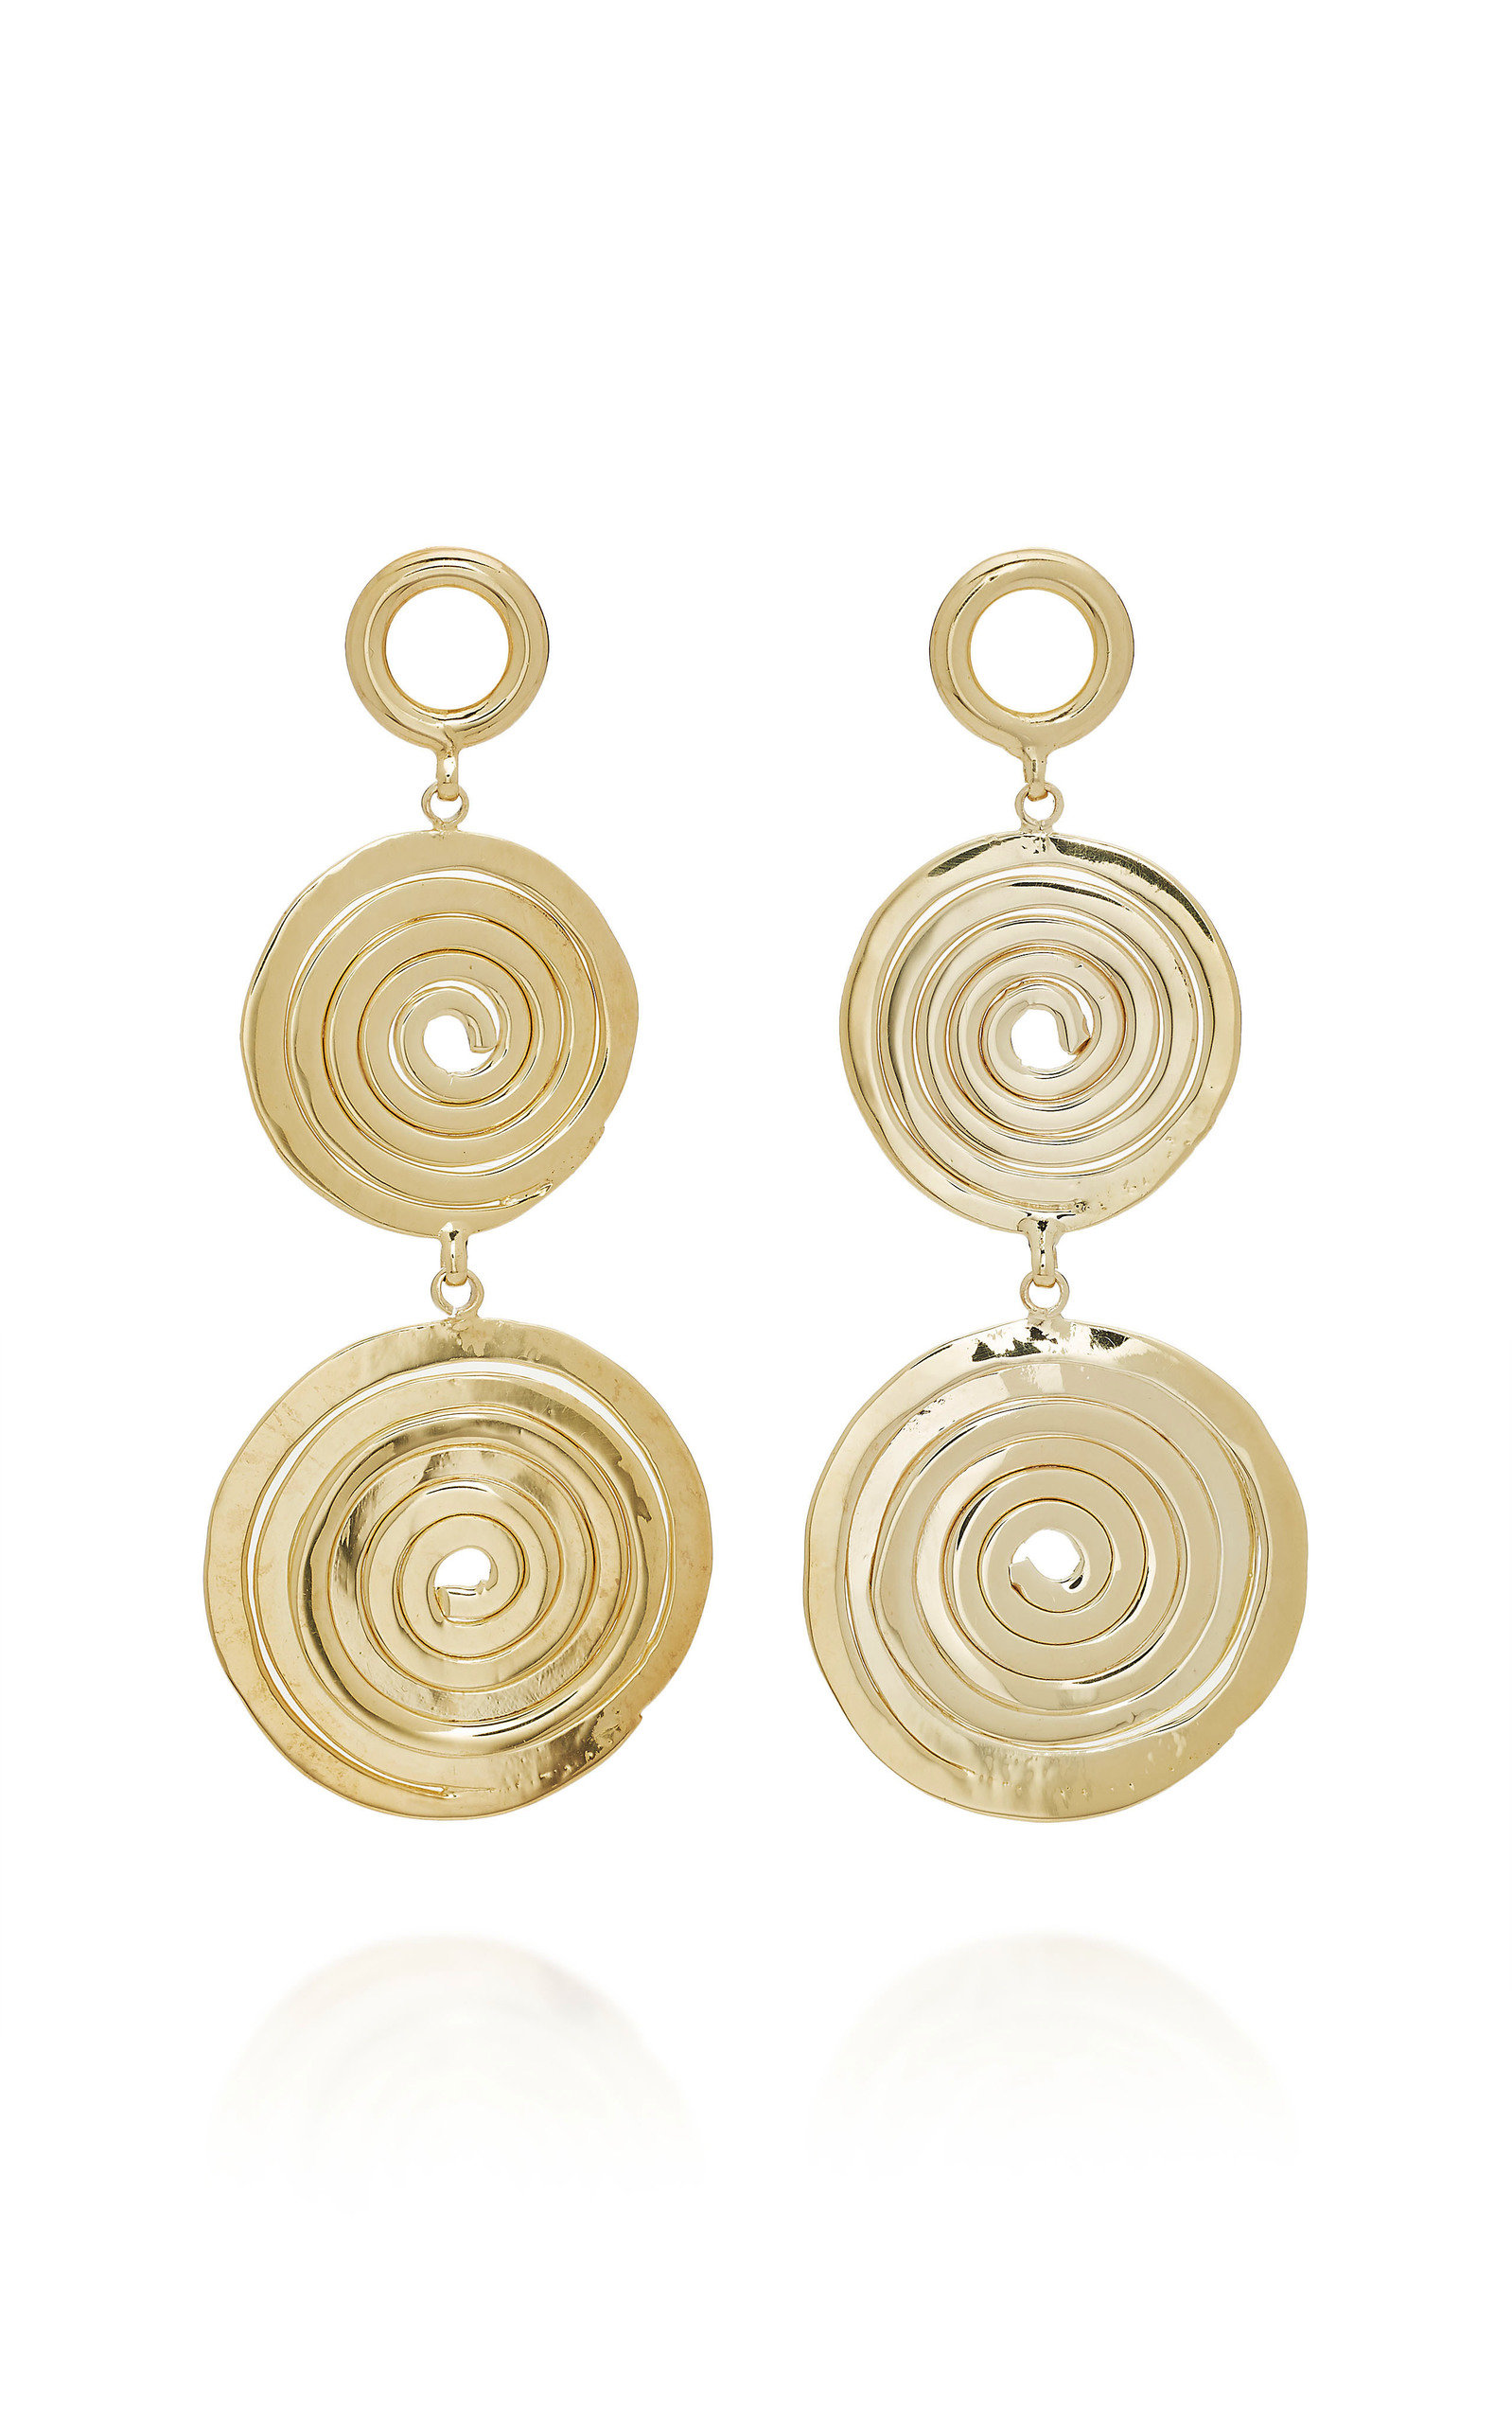 Aracano_Aros_Gold_Caracol_Earrings_Moda_Operando.jpg